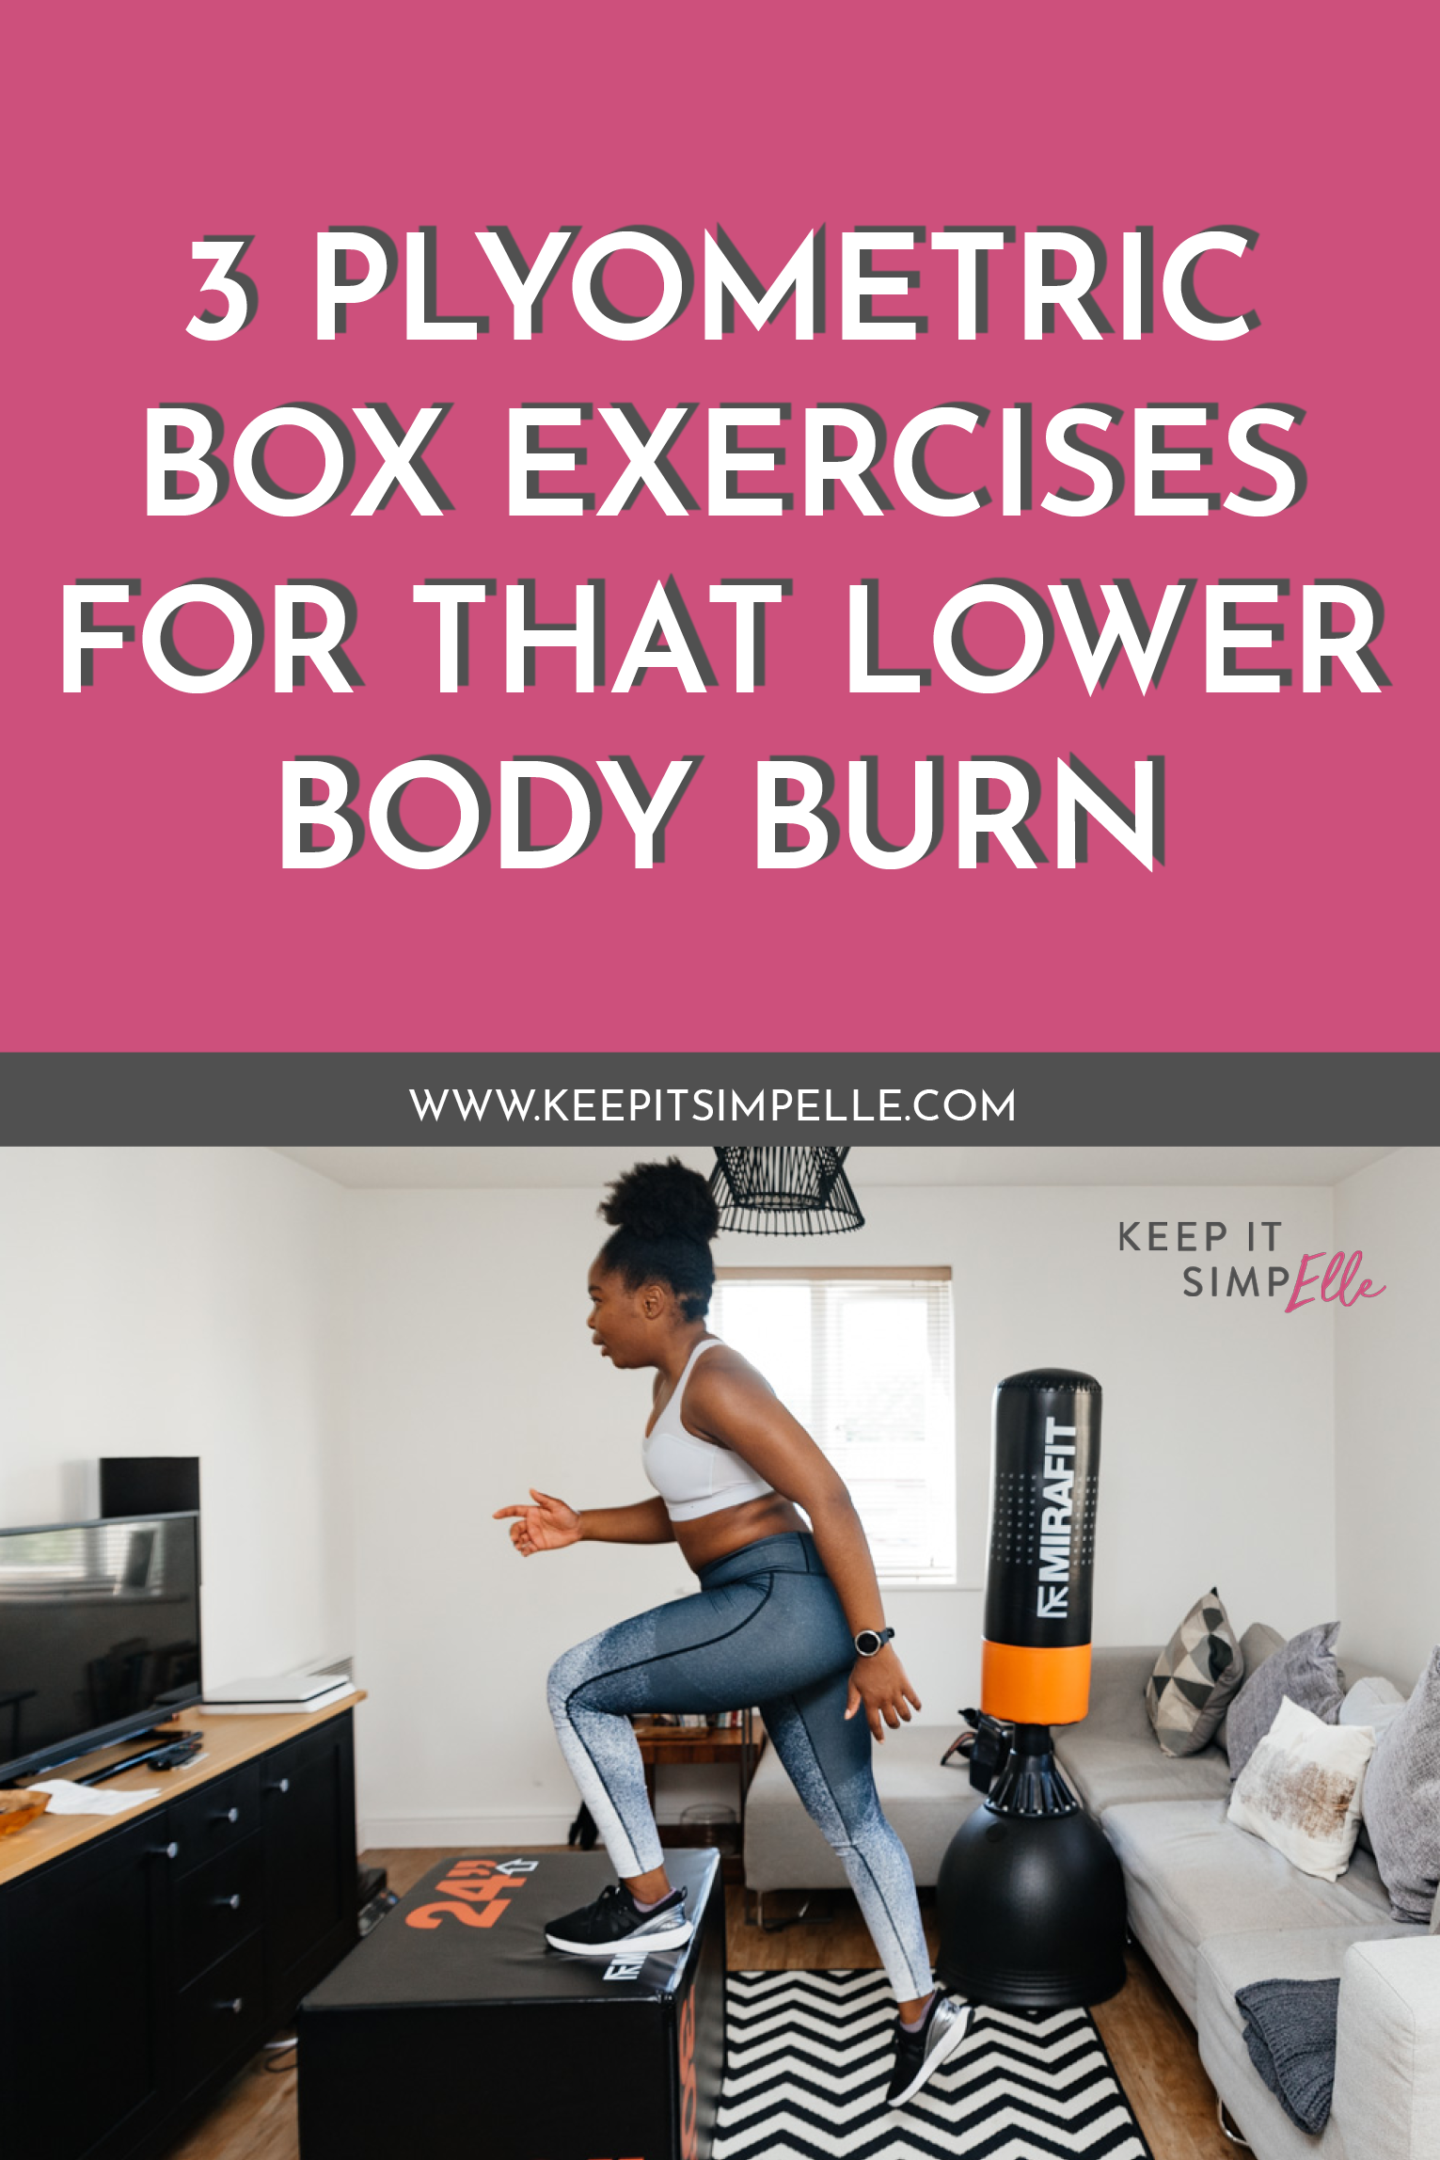 3 Plyometric Box Exercises For That Lower Body Burn pinterest image